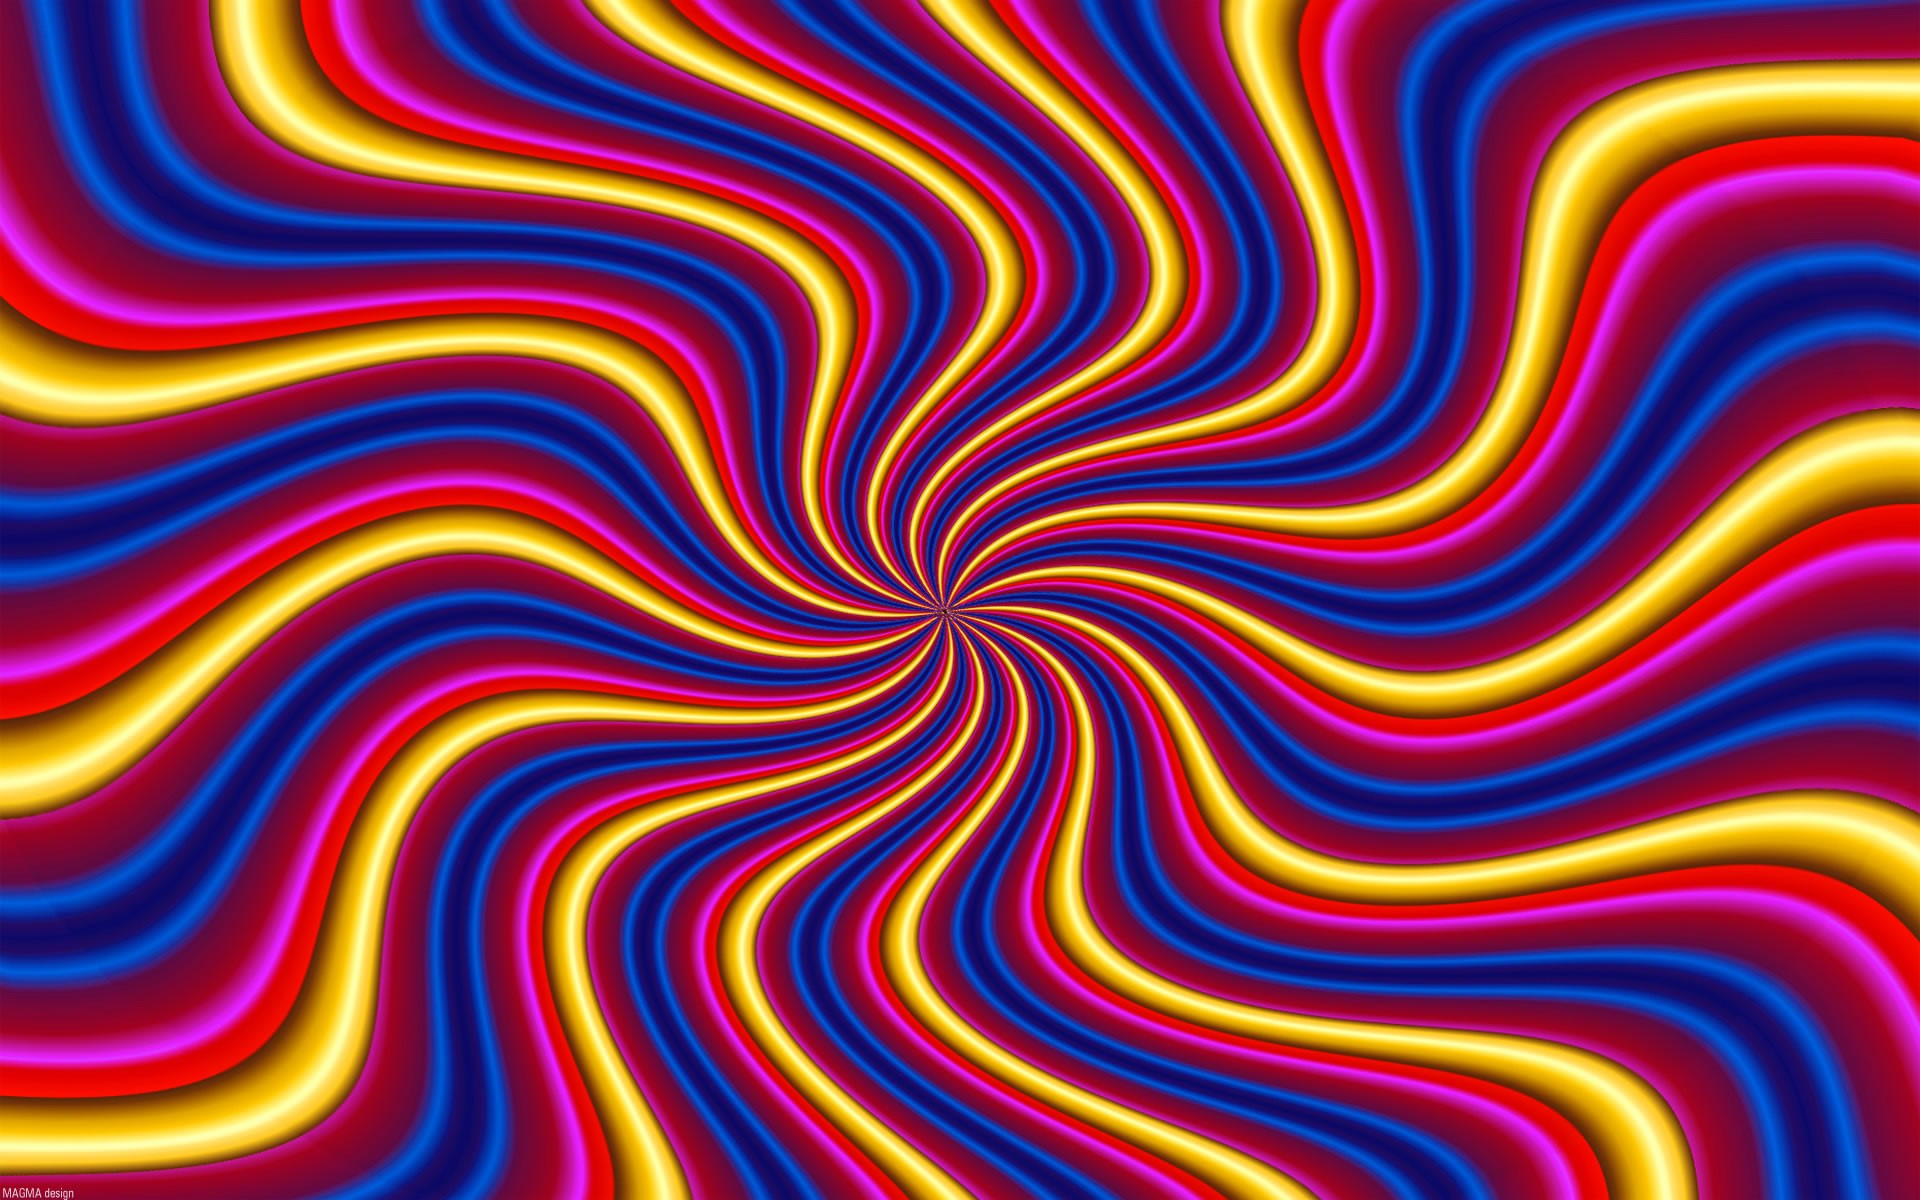 Psychedelic Computer Wallpapers Desktop Backgrounds 1920x1200